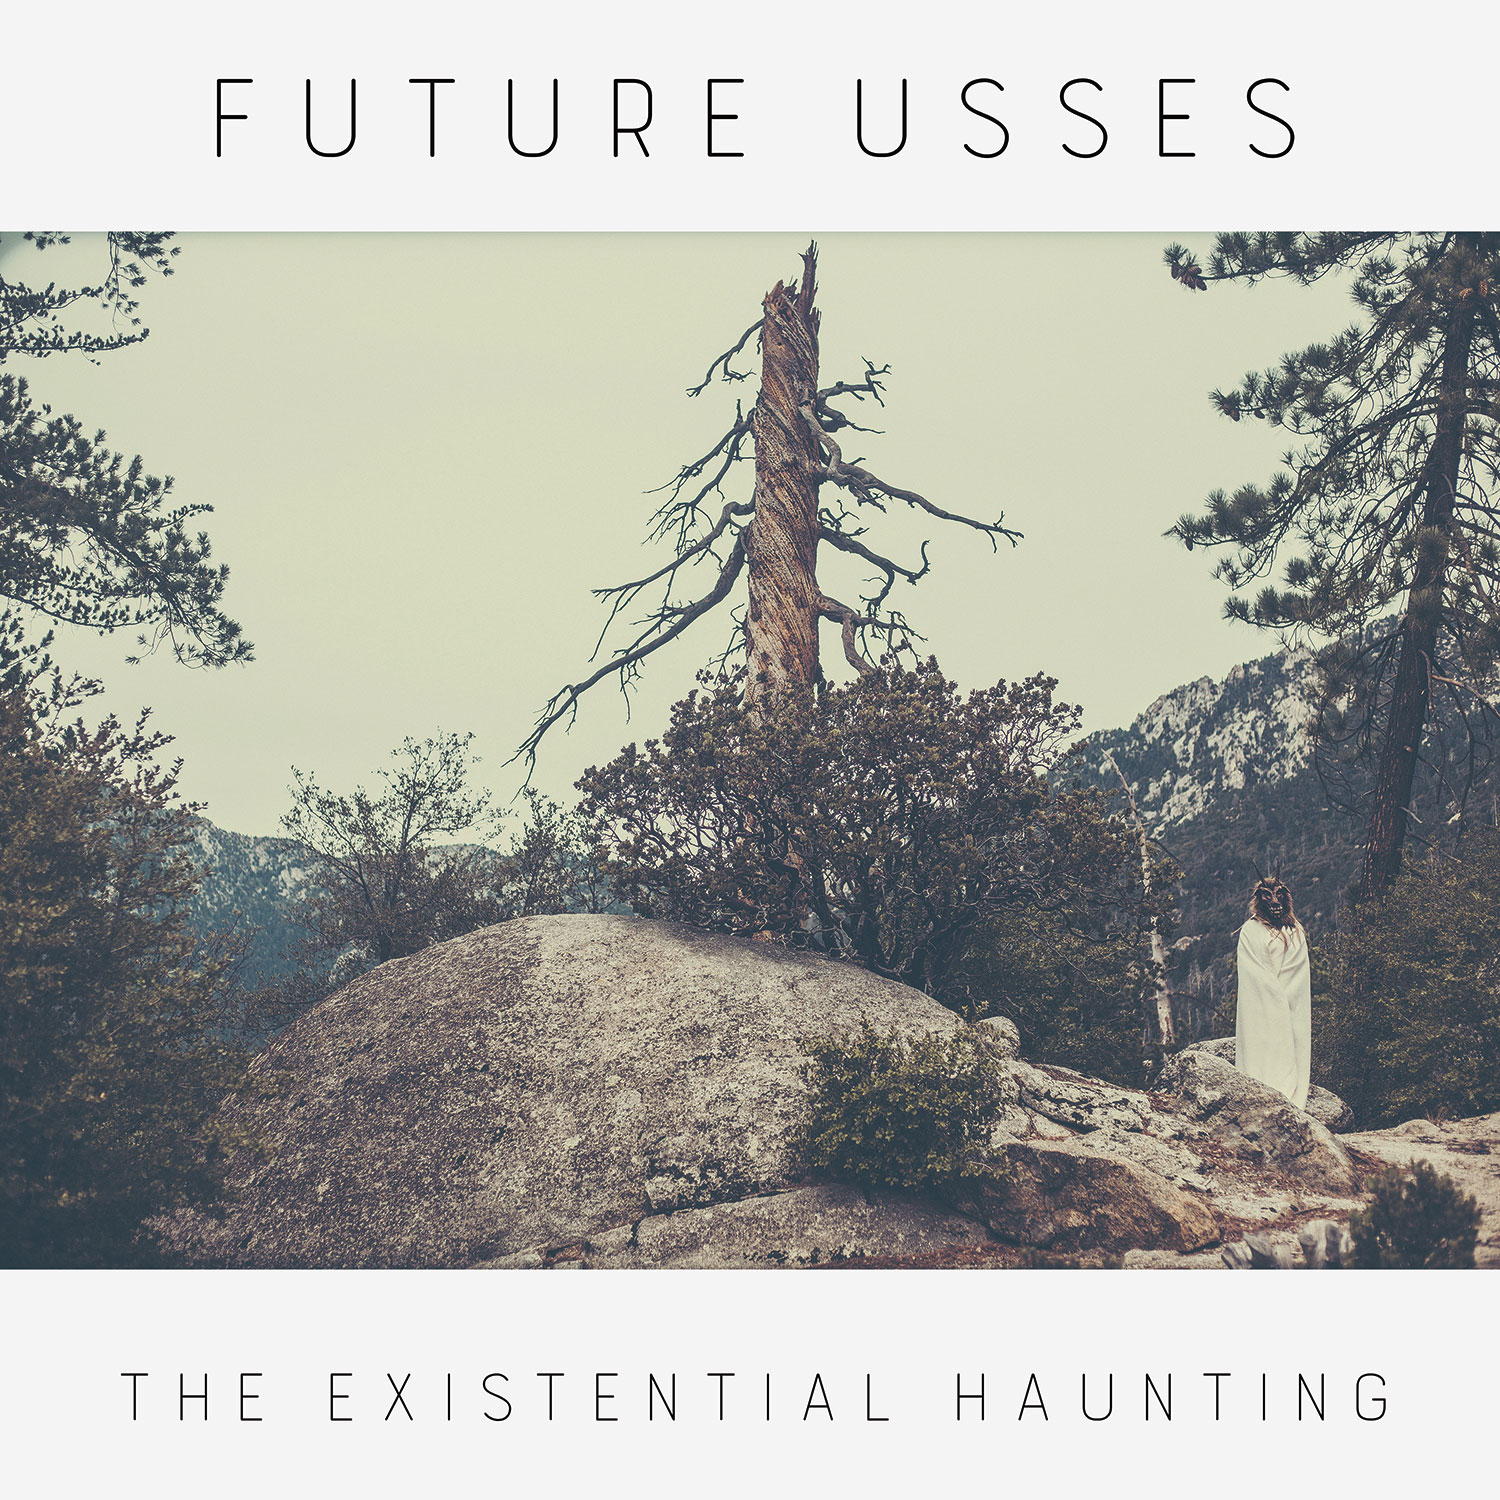 The Existential Haunting